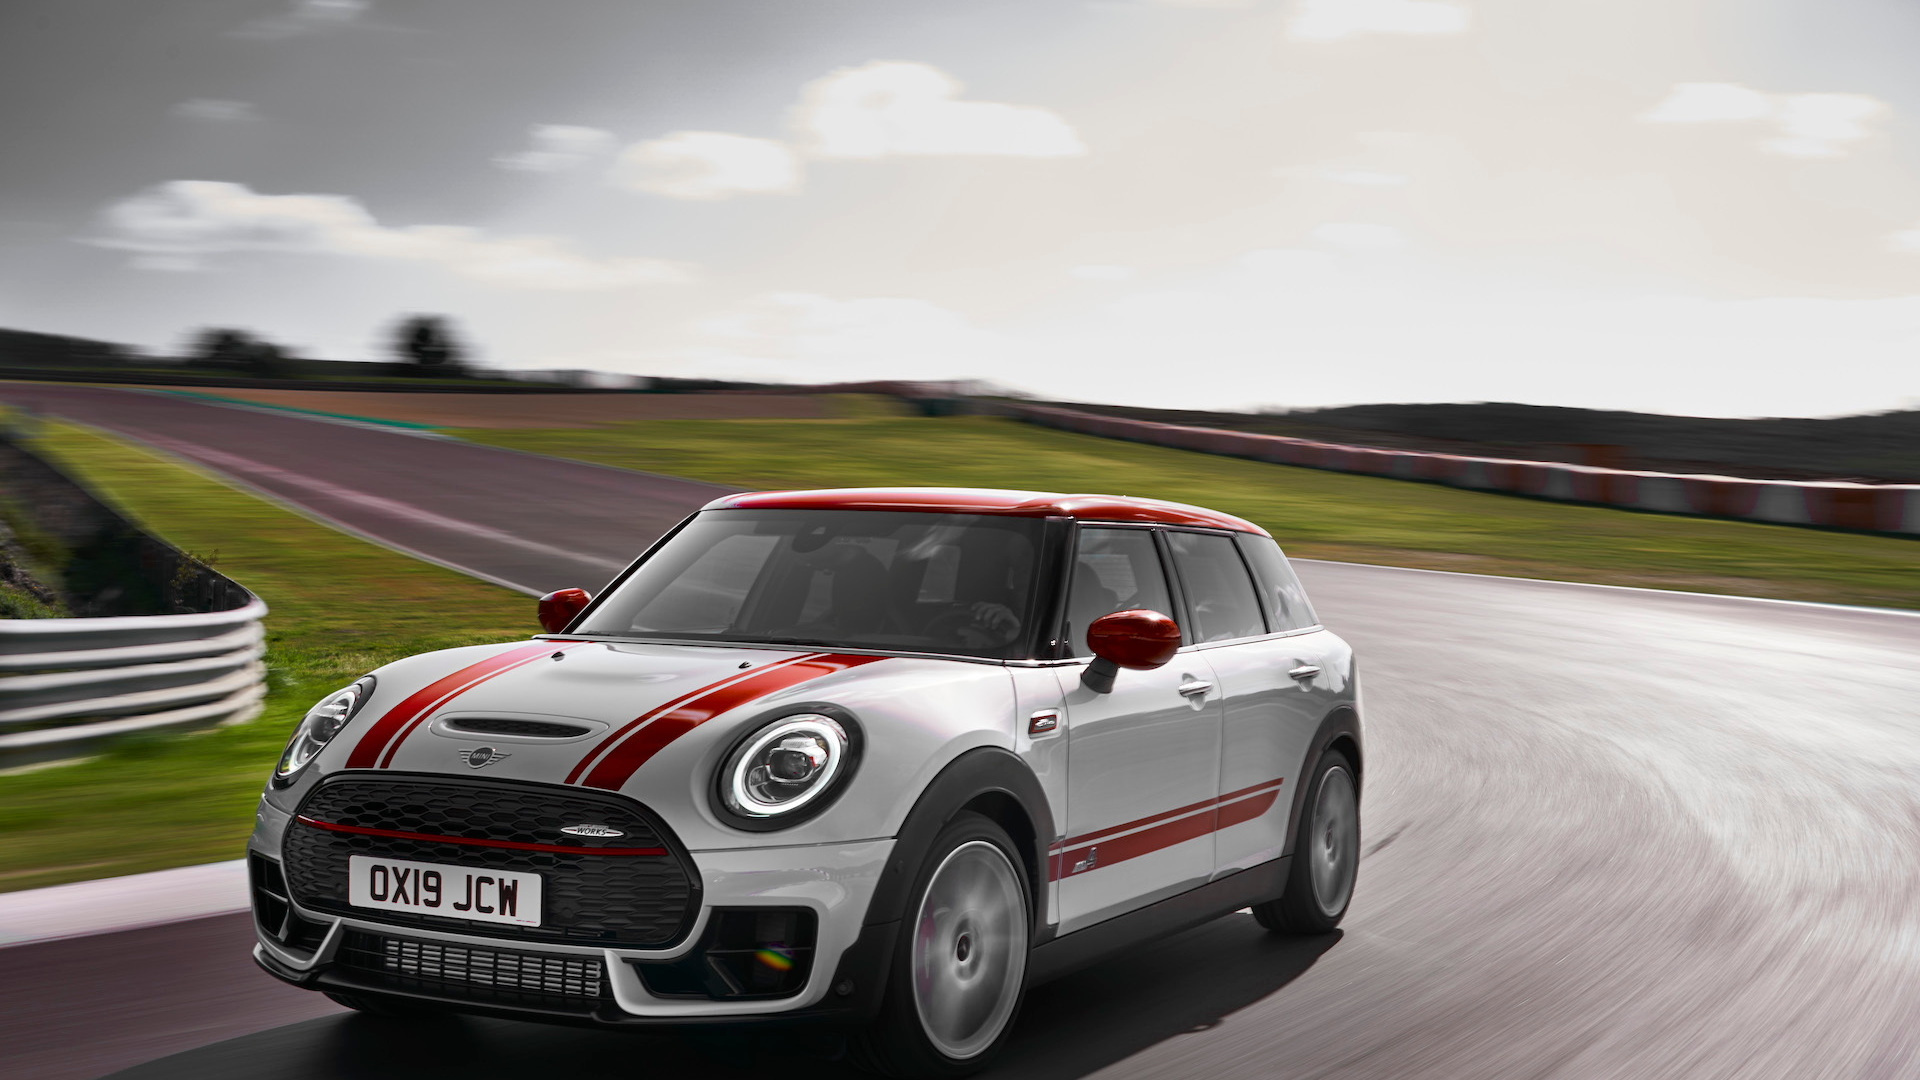 2020 Mini John Cooper Works Clubman And Countryman To Top 300 Horsepower